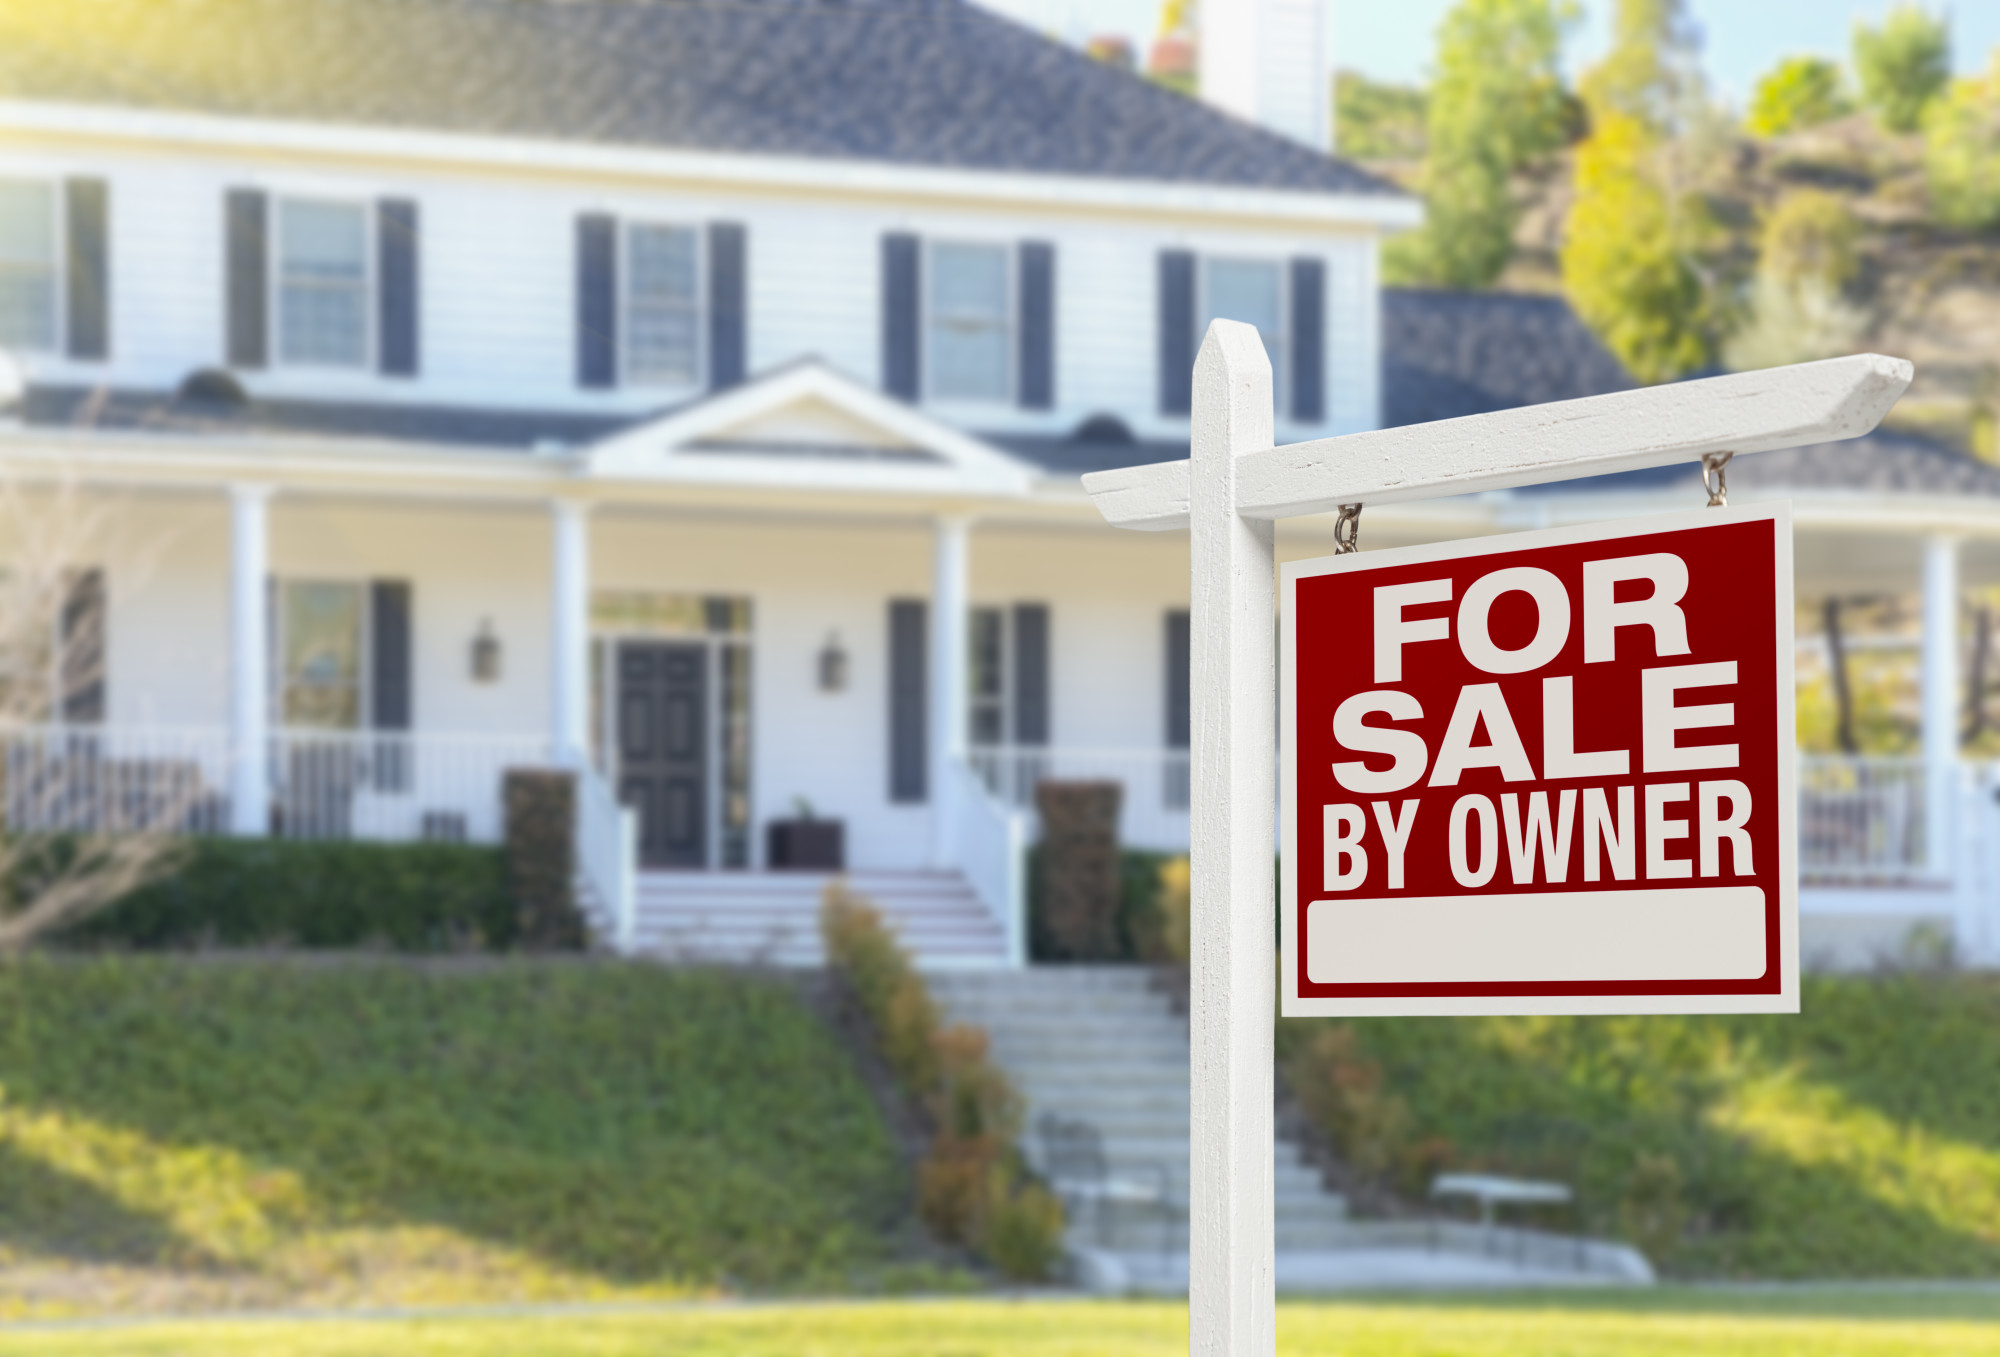 Are you interested in buying a home in Chicago, Illinois? If so, here are a few things you should know about the Chicago real estate market.